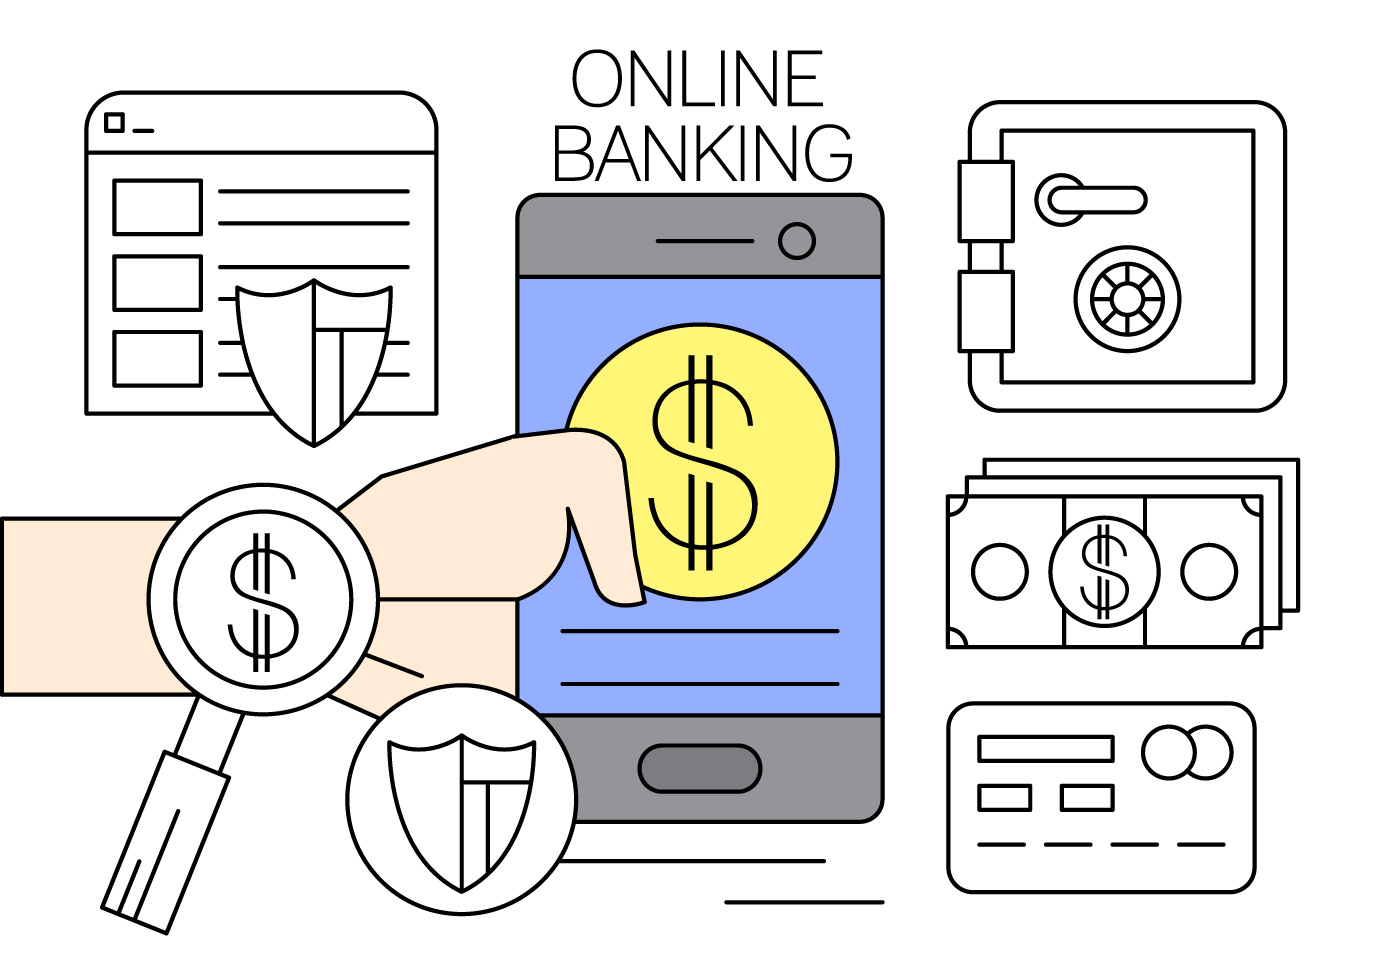 Free Online Banking Vector Illustration - Download Free ...